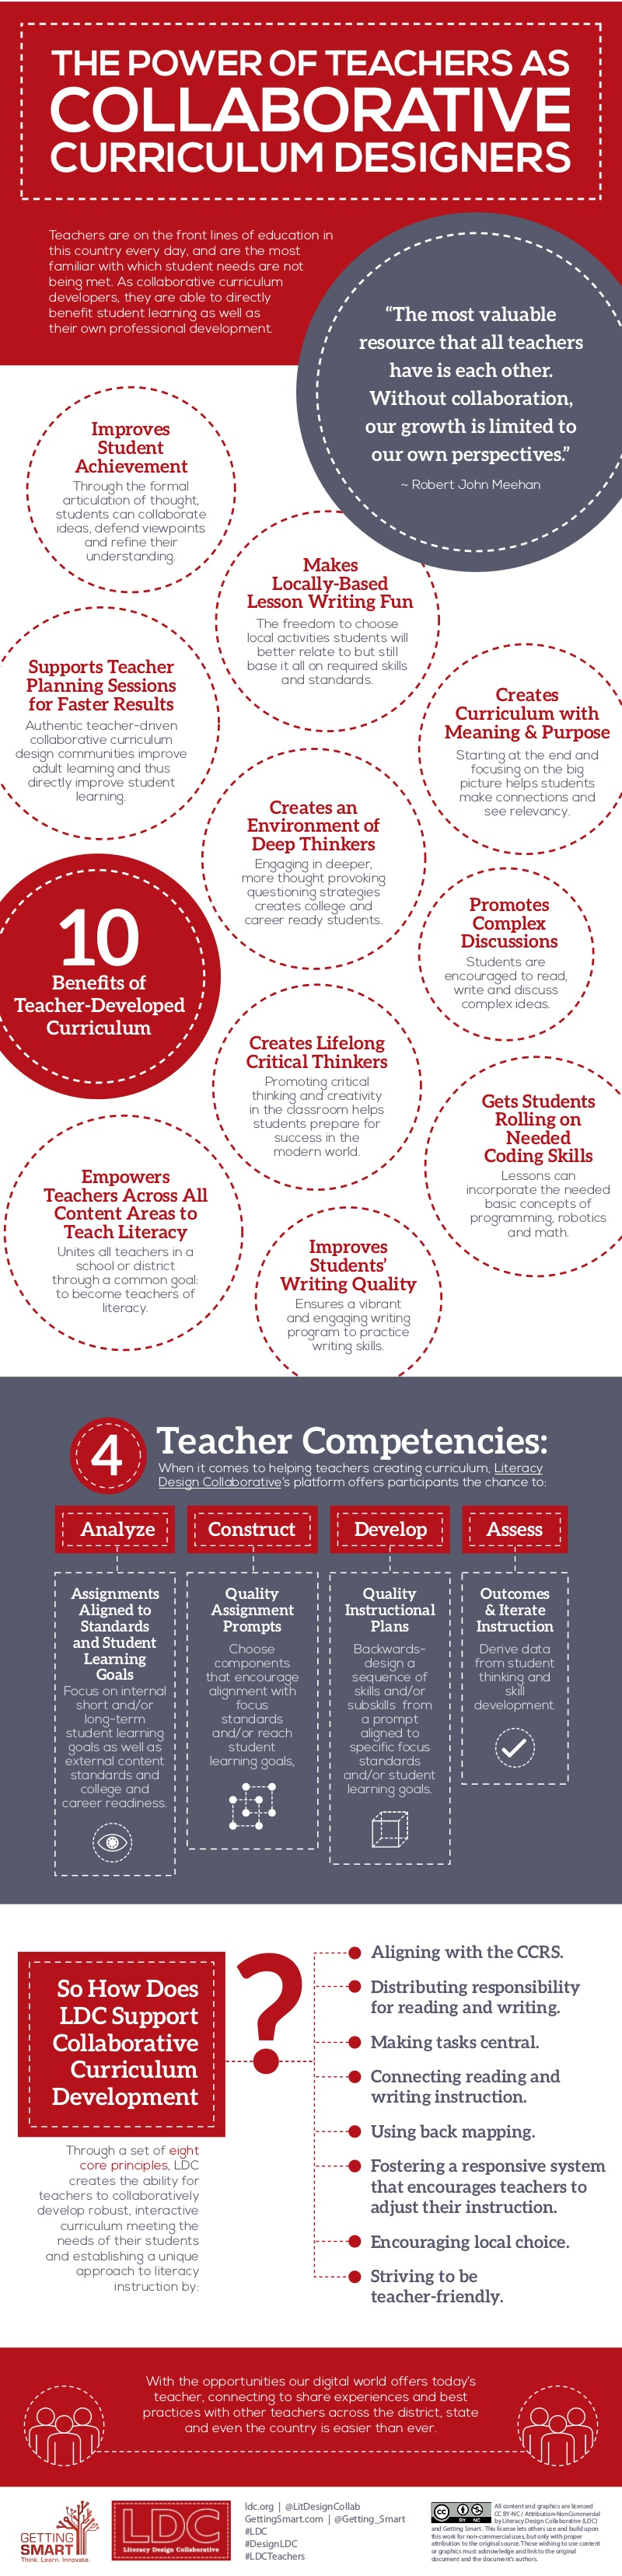 The Power of Teachers as Collaborative Curriculum Designers infographic